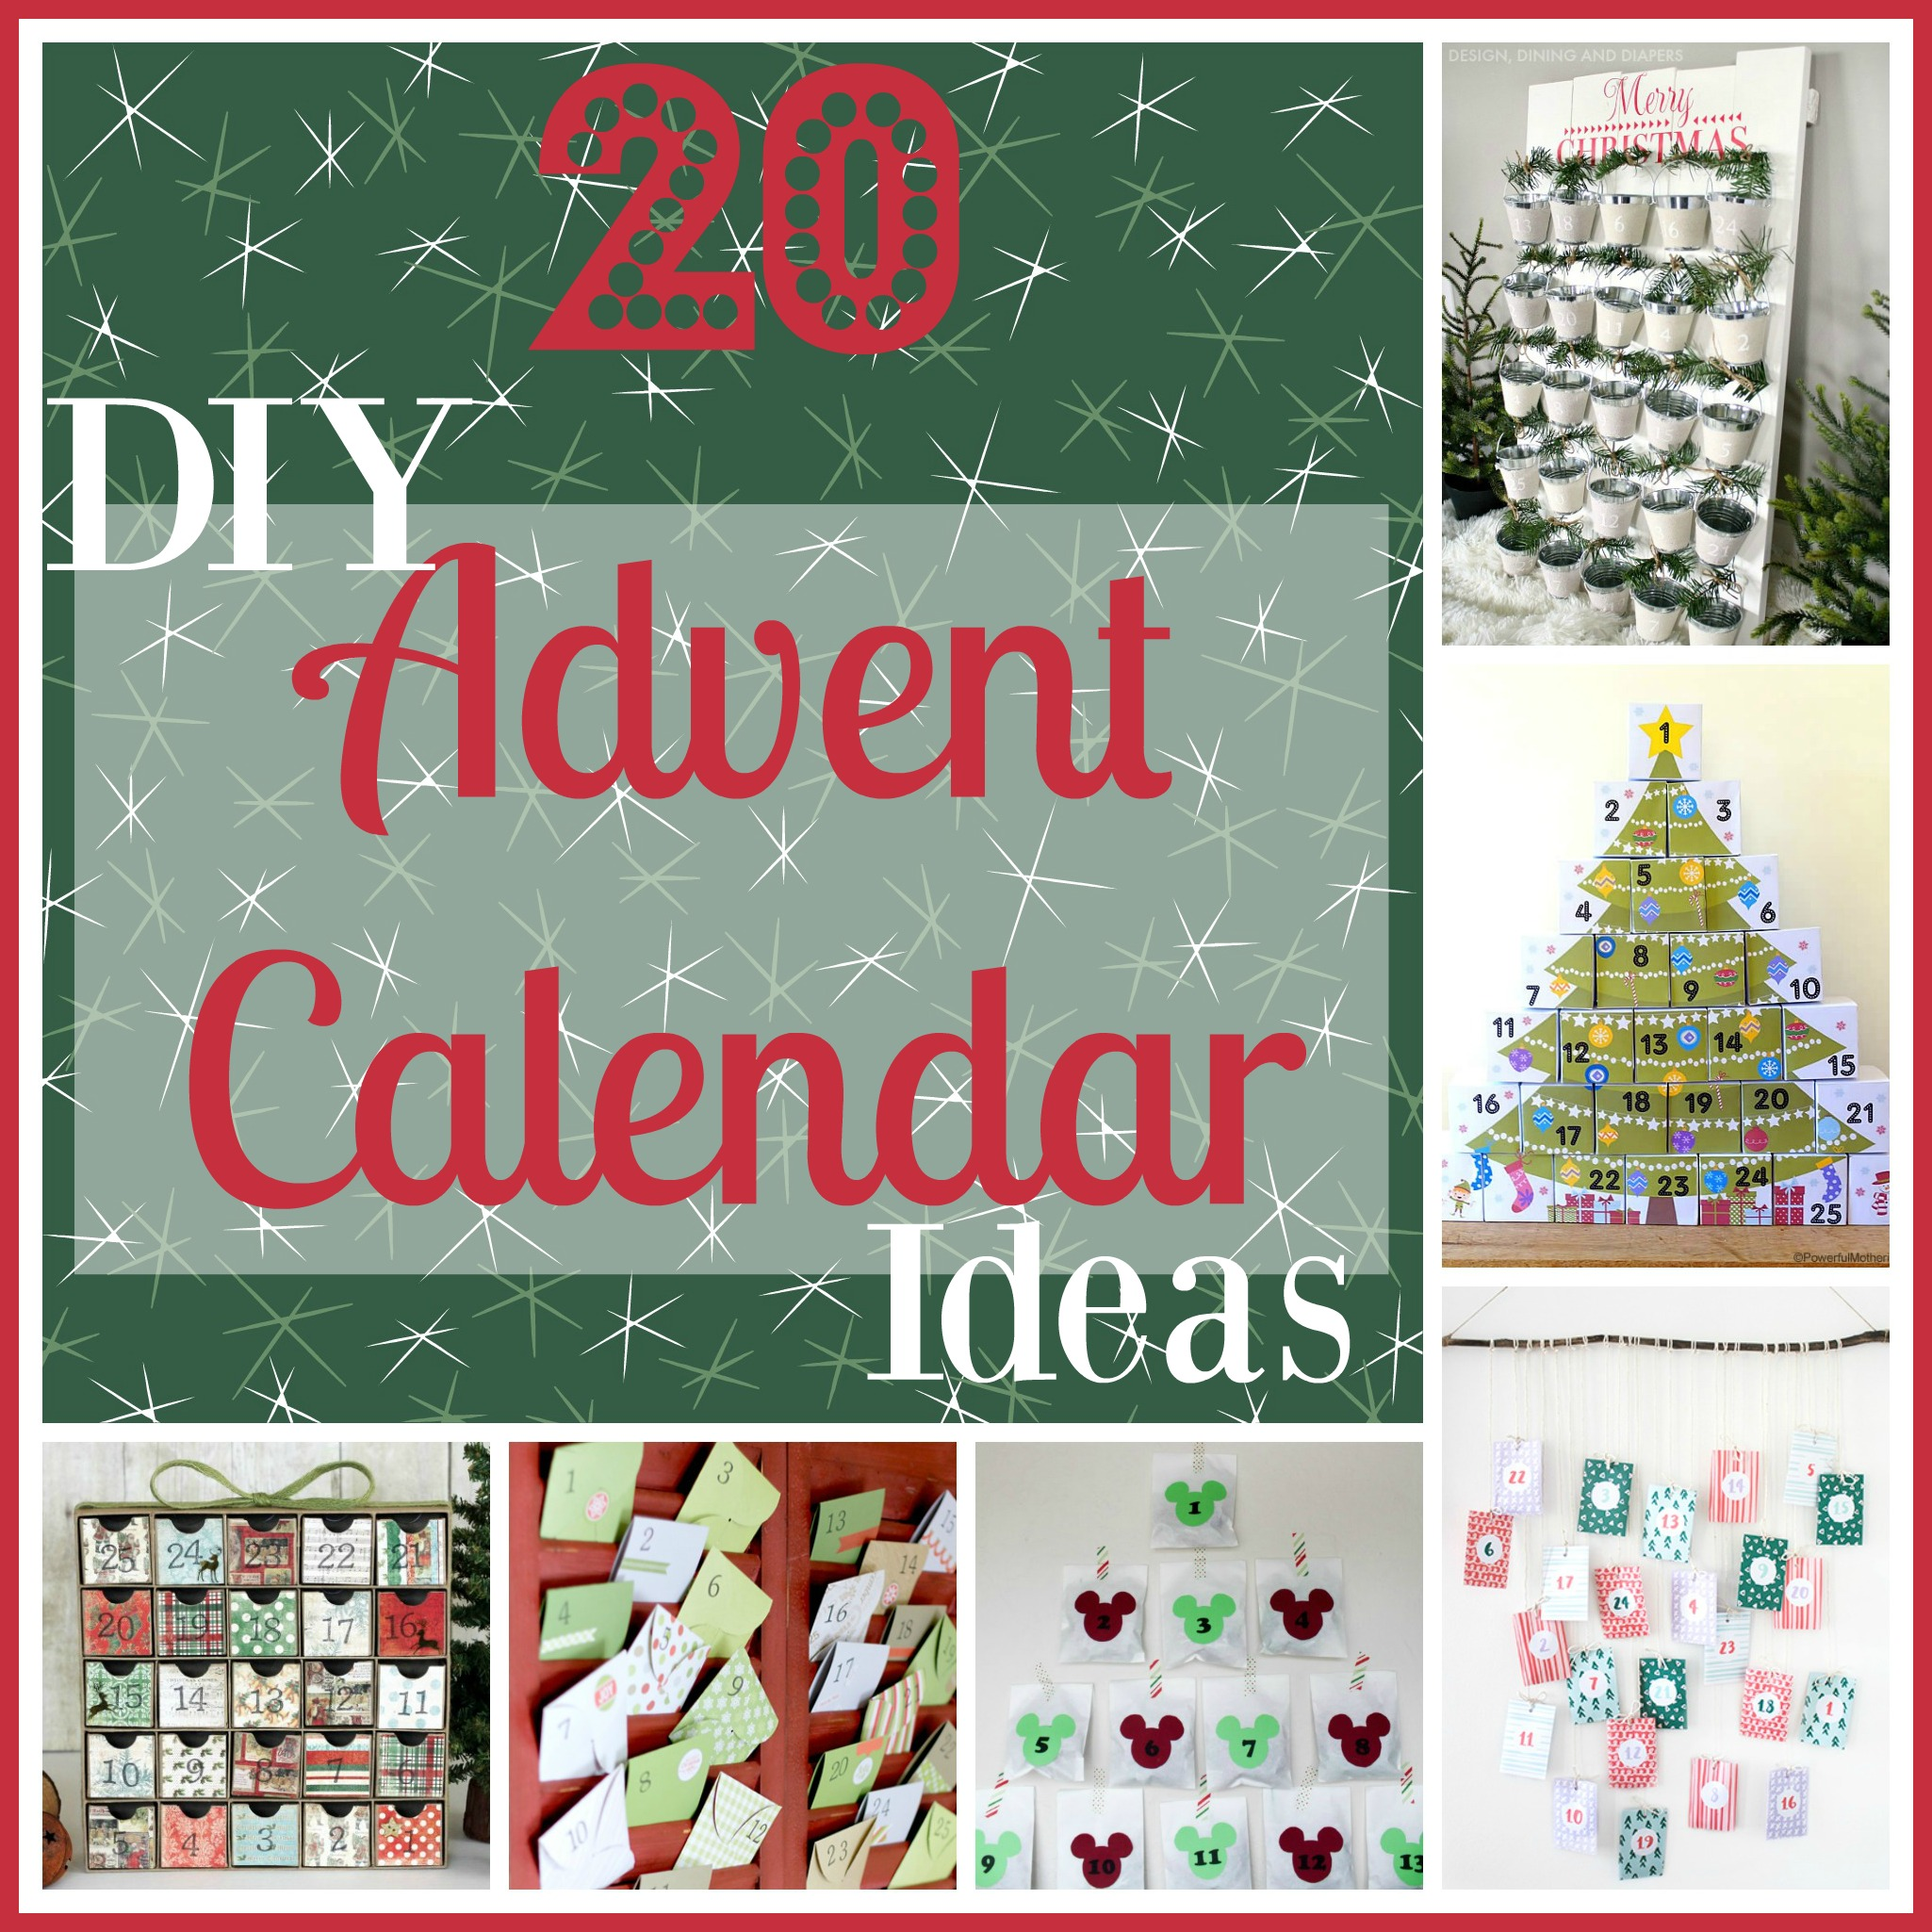 Advent Calendar Diy Ideas : Diy christmas advent calendar ideas livin the mommy life